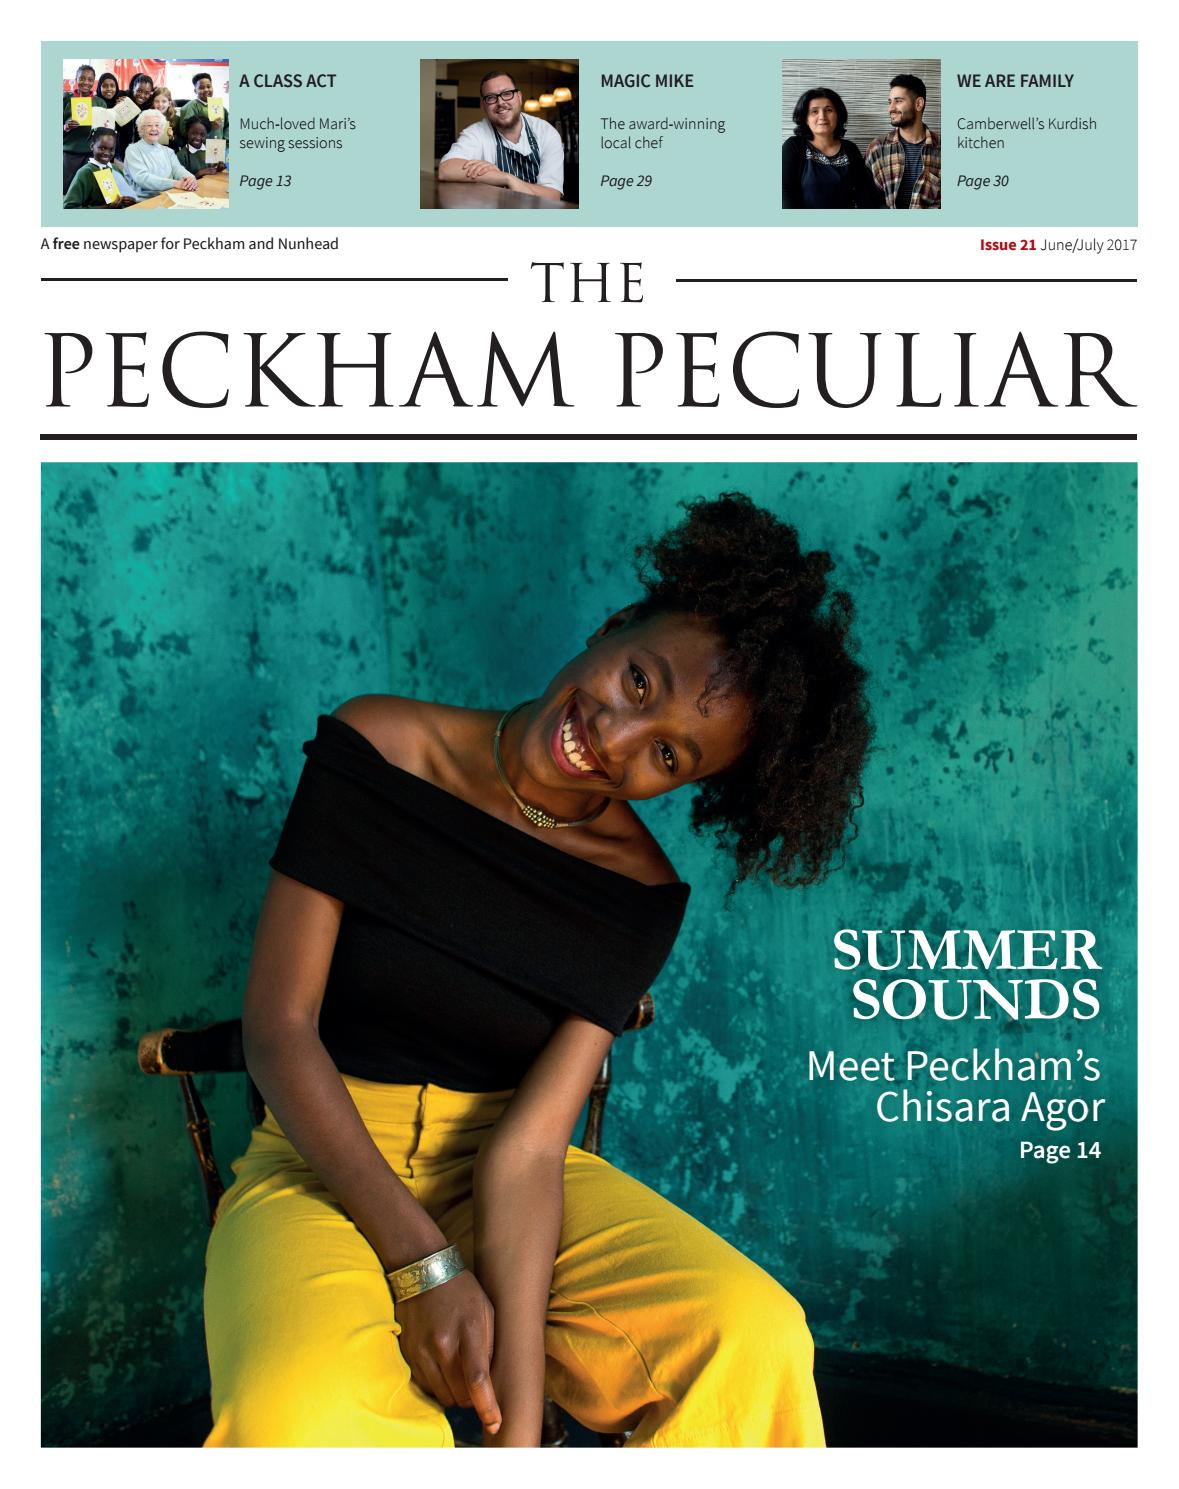 Issue 21 of The Peckham Peculiar by The Peckham Peculiar - issuu